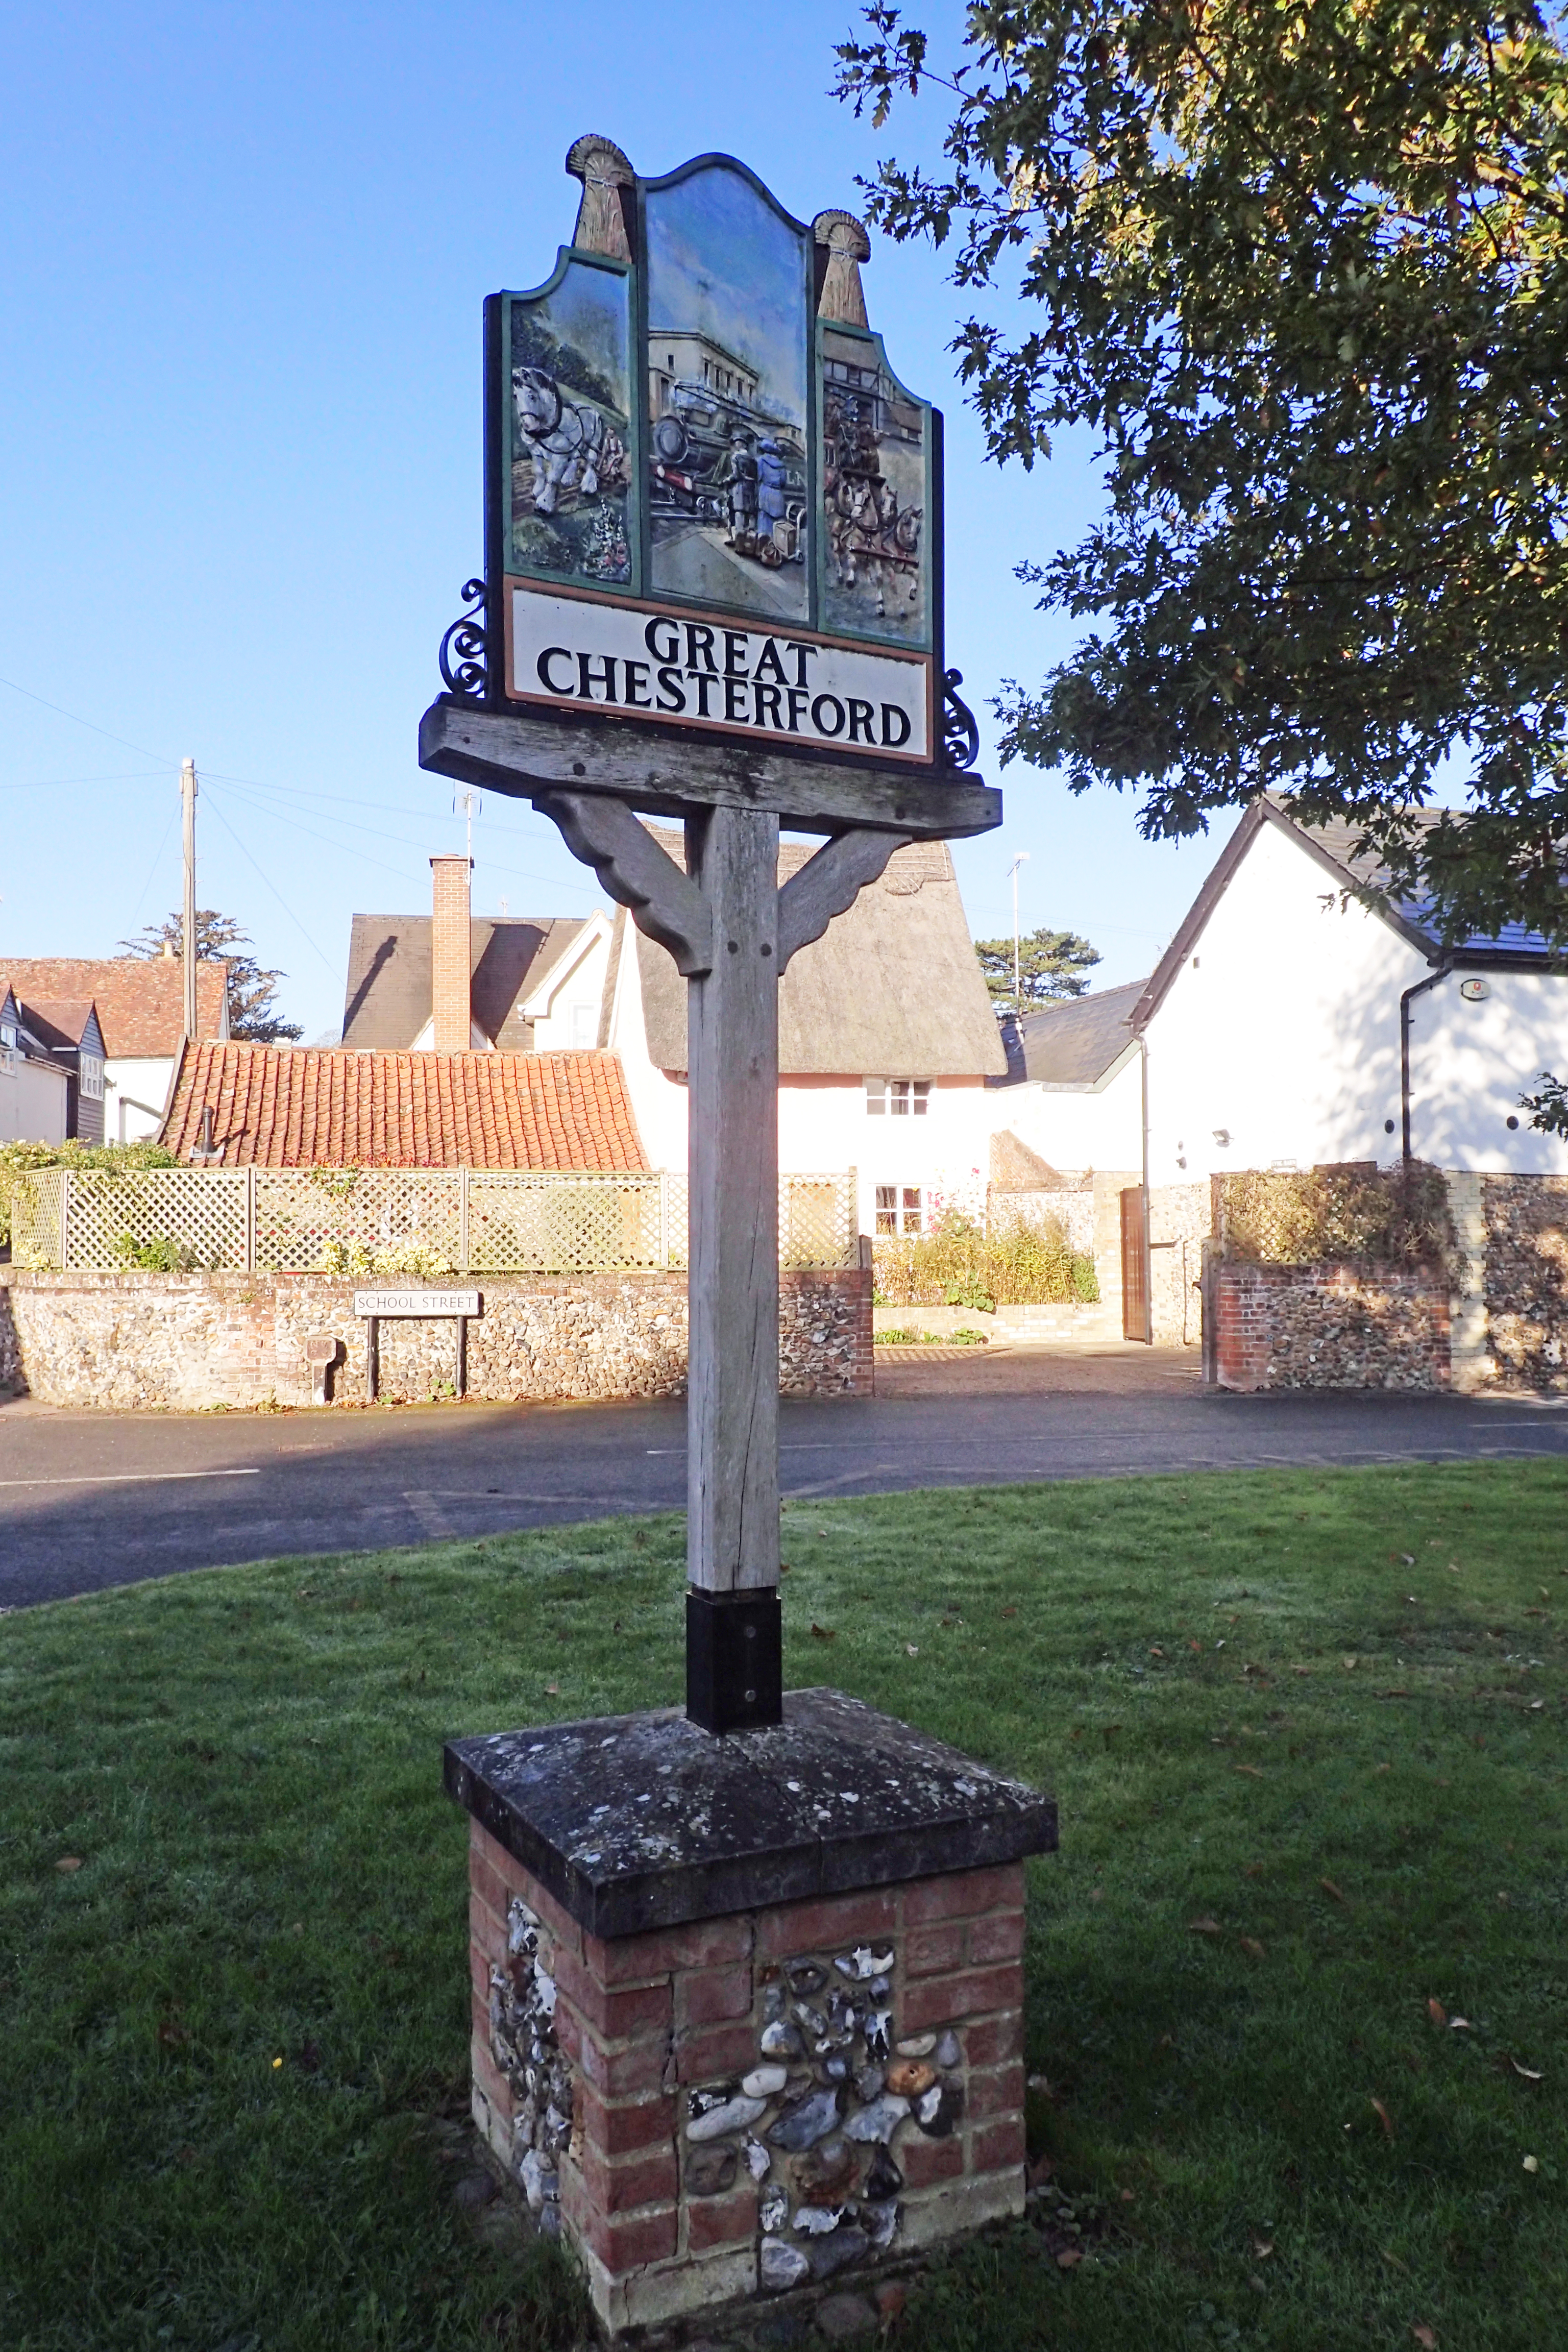 Village sign at Great Chesterford, passed on the Icknield Way